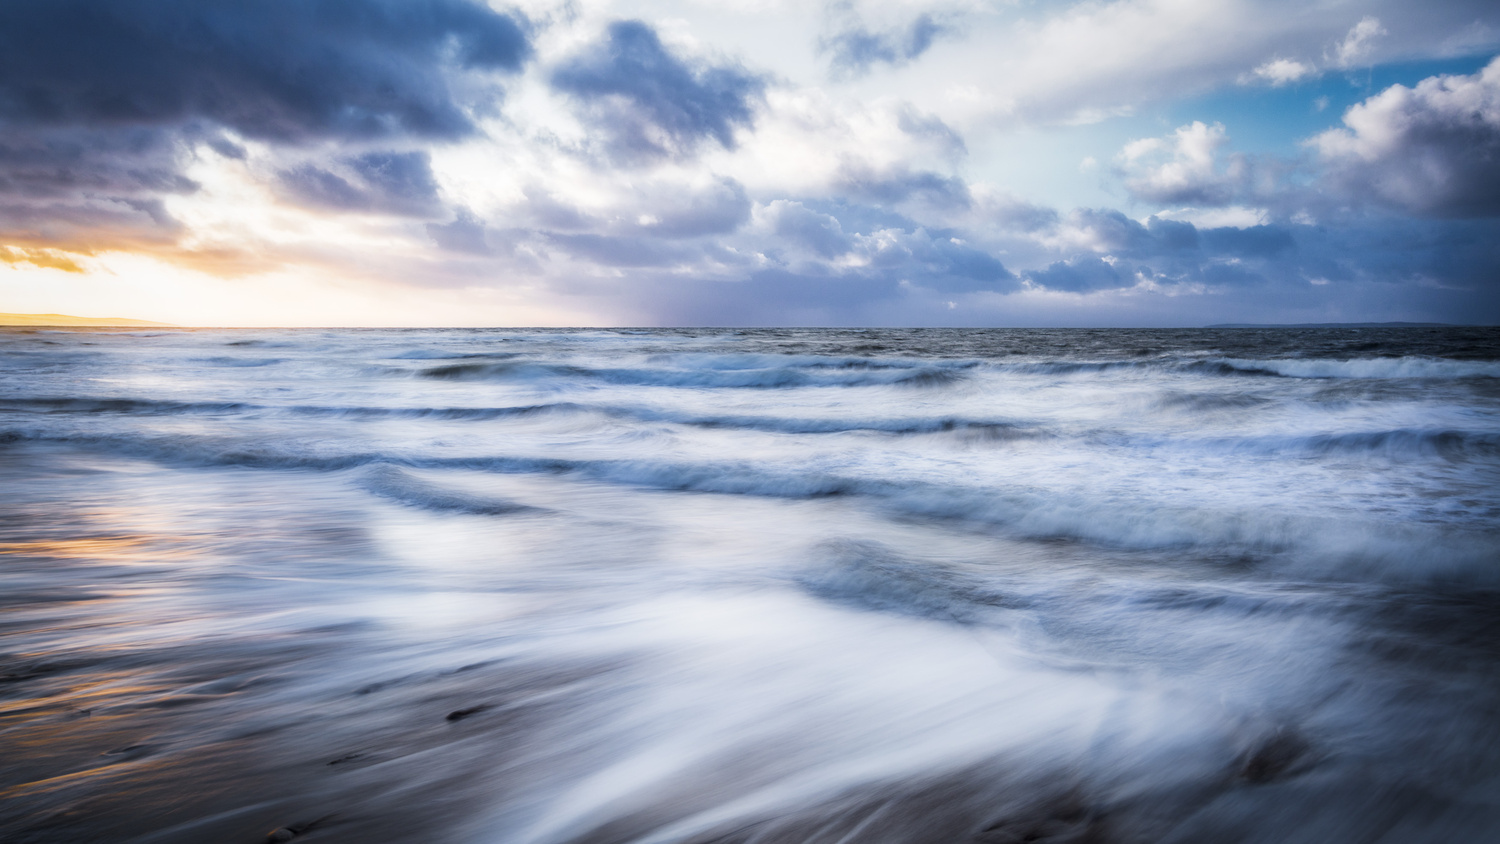 Motion in the Ocean by Mike O'Leary